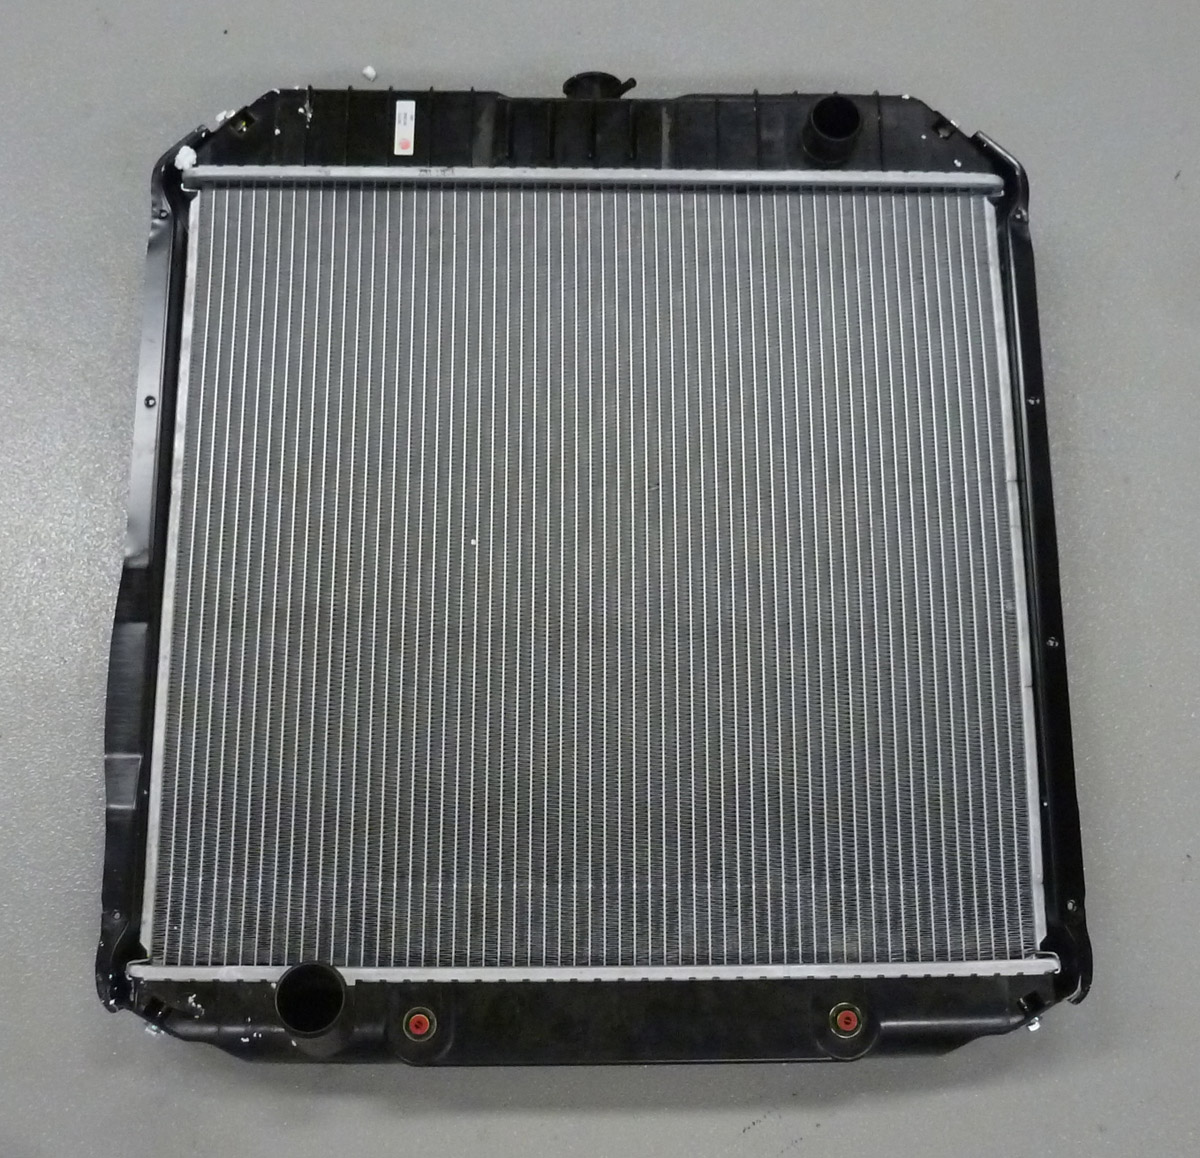 73 79 Bronco And F Series Truck Radiators Shrouds 77 Ford 150 Engine Diagram 1977 Radiator Super Cooling